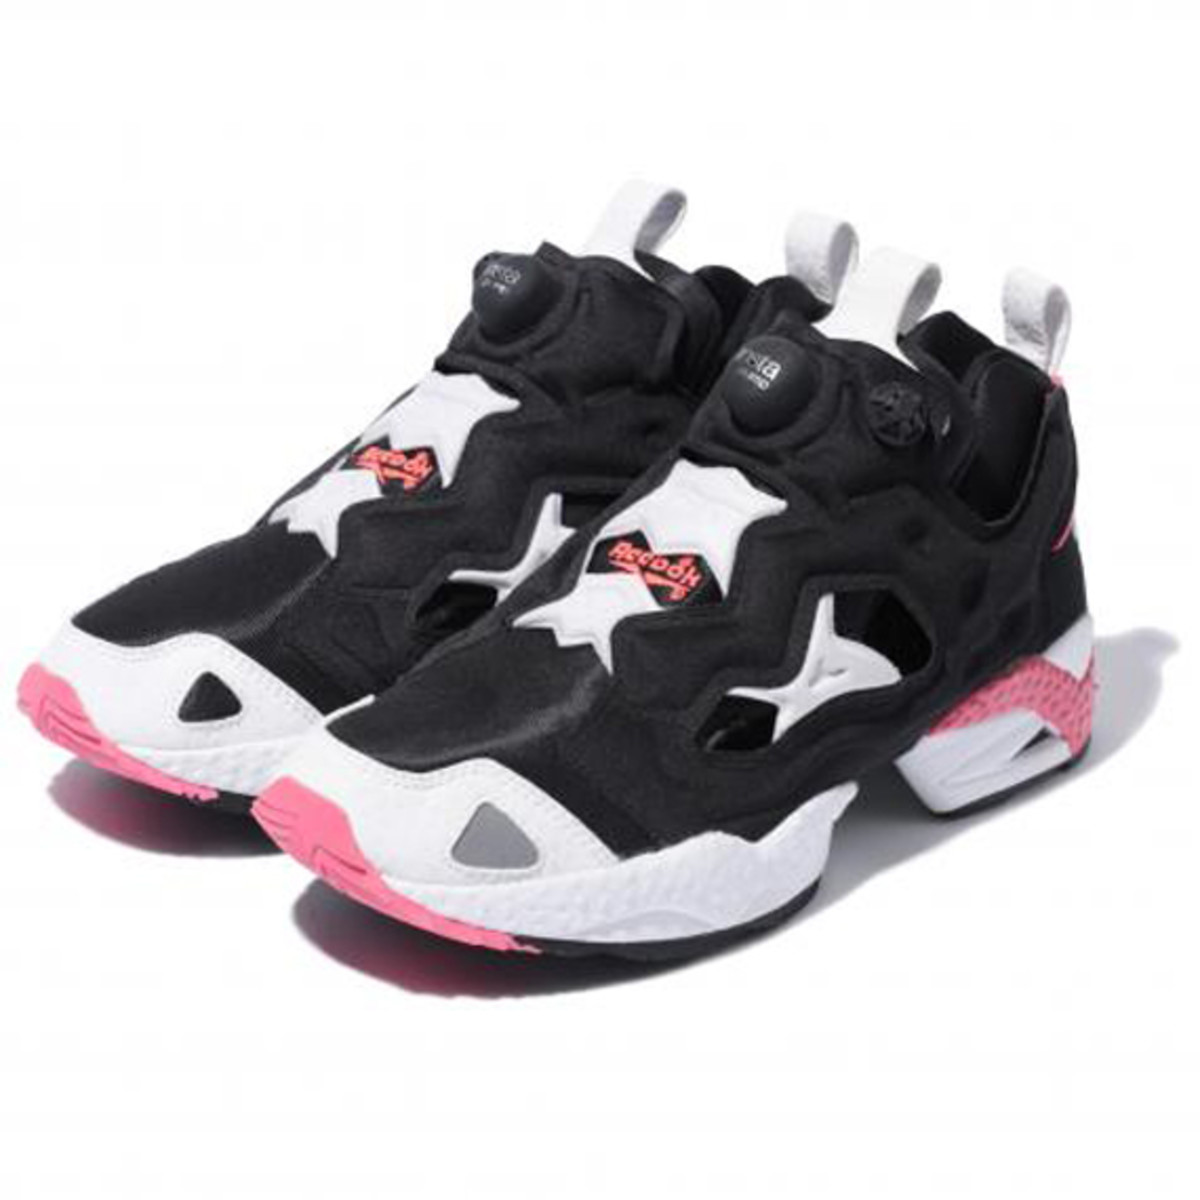 pump-fury-cherry-01